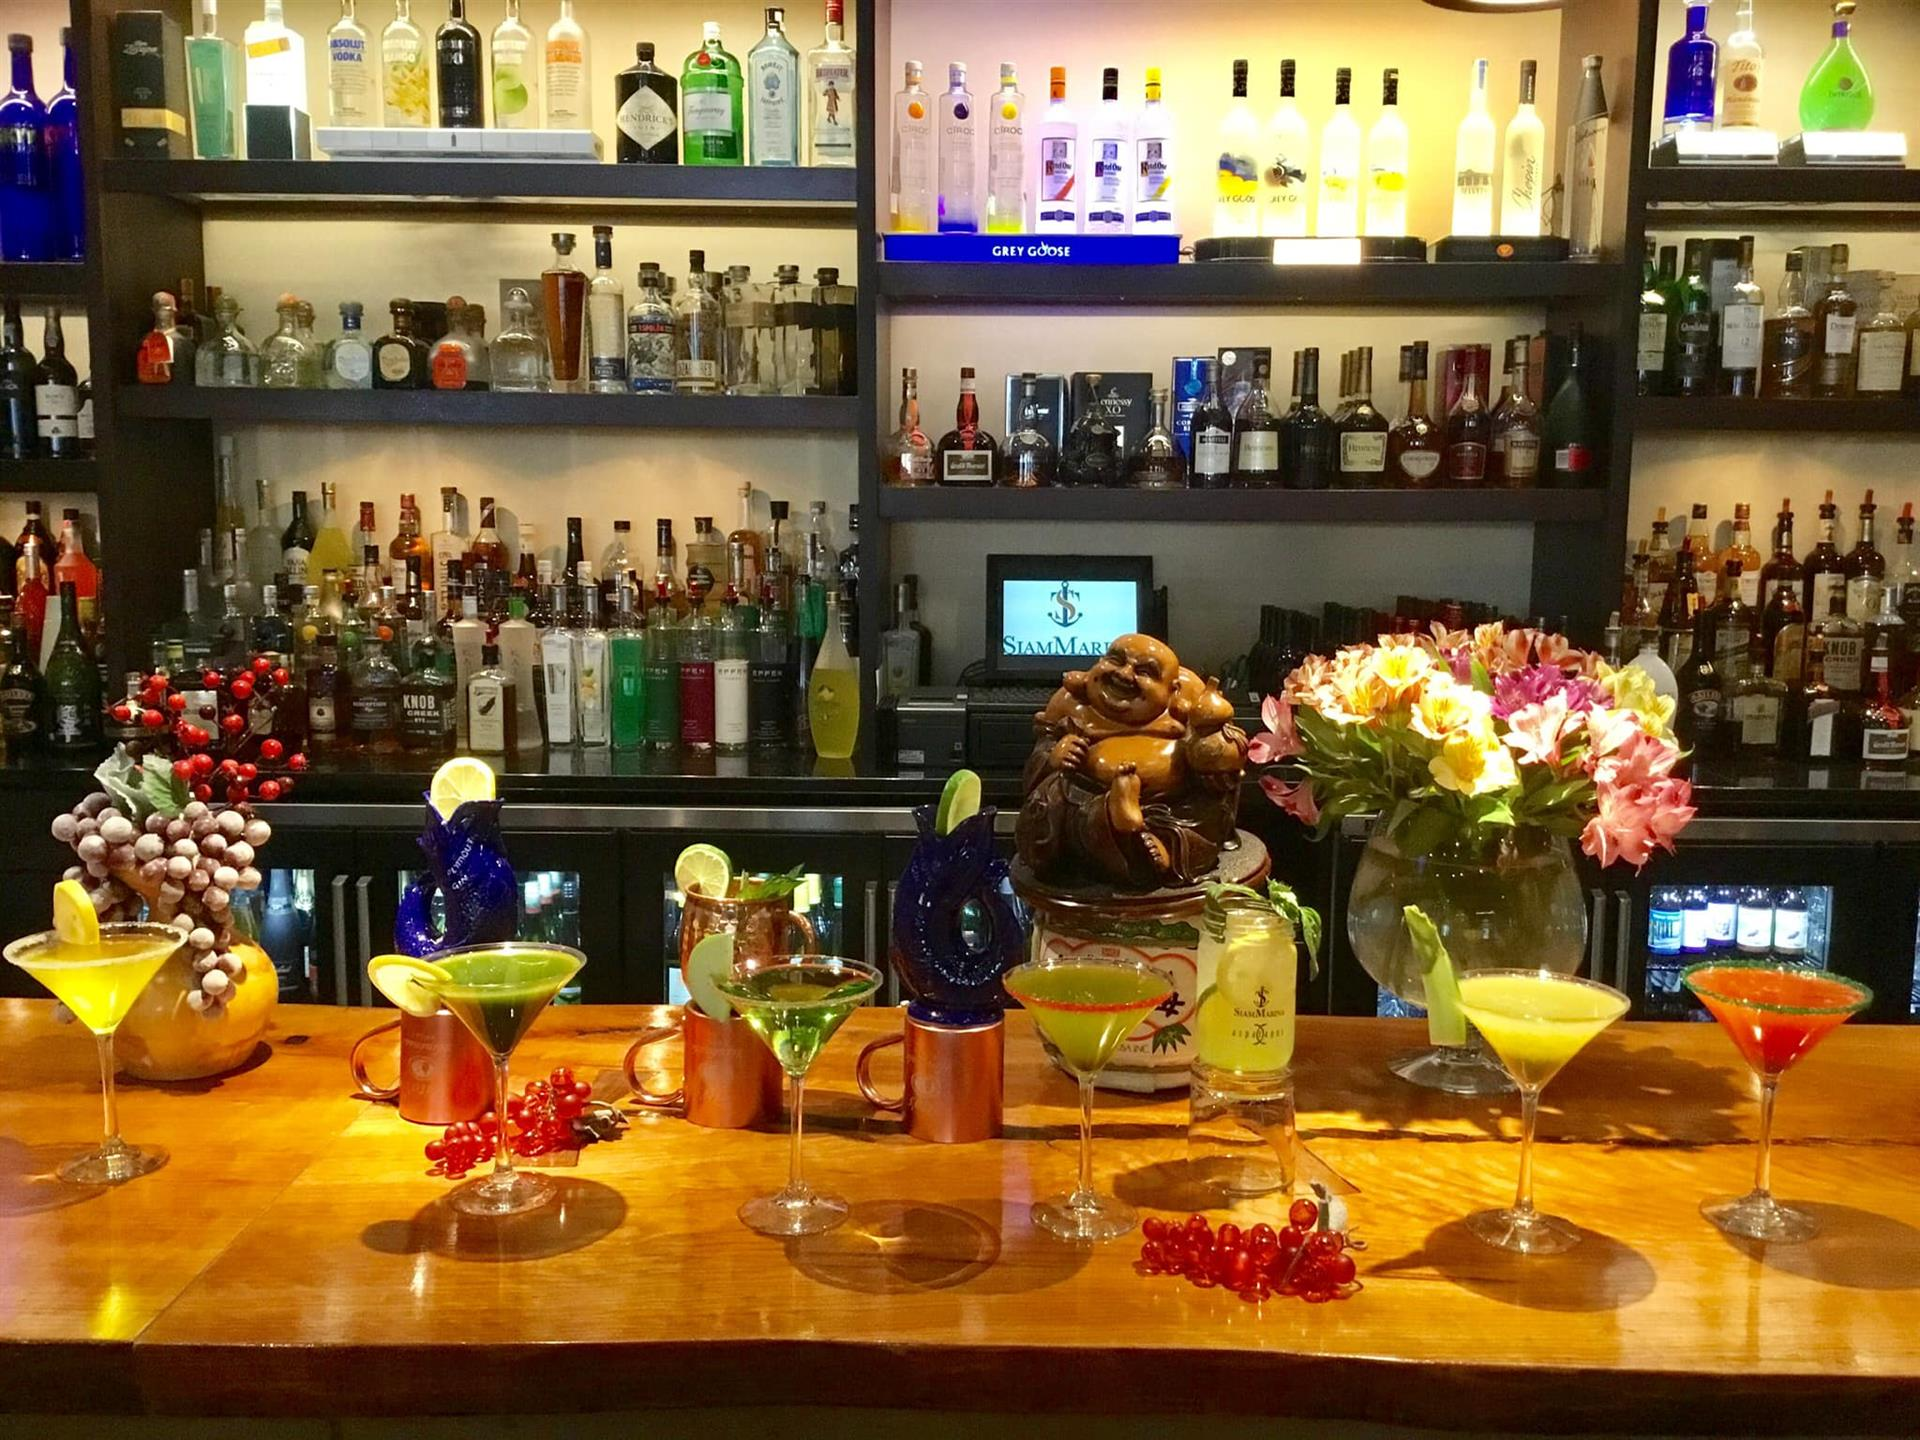 Bar with bottles and martini glasses